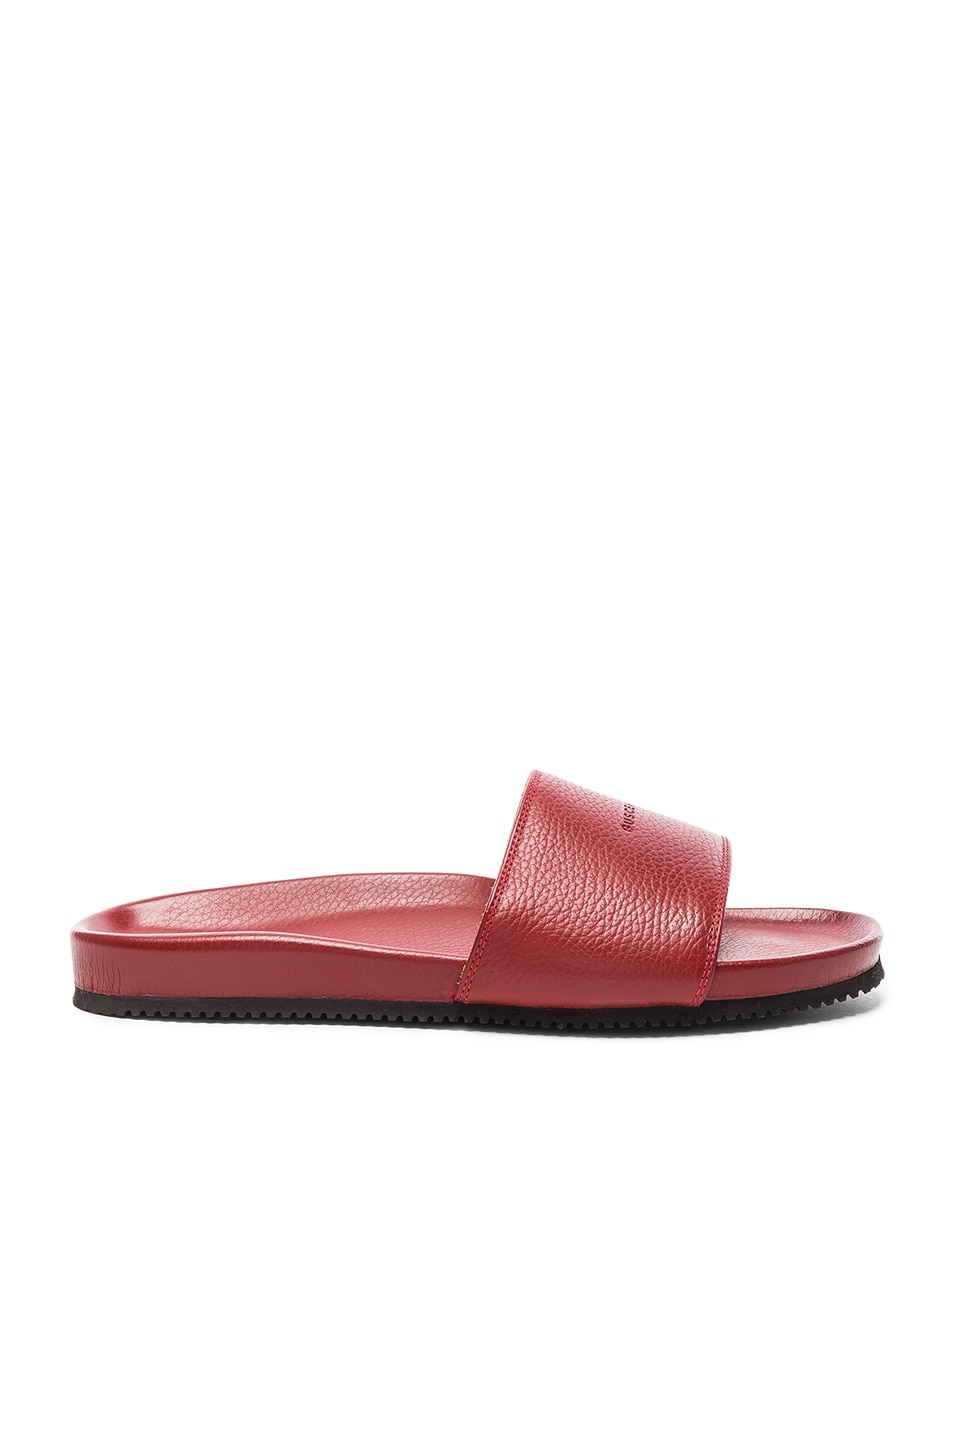 Image 2 of Buscemi Classic Leather Slide Sandals in Red